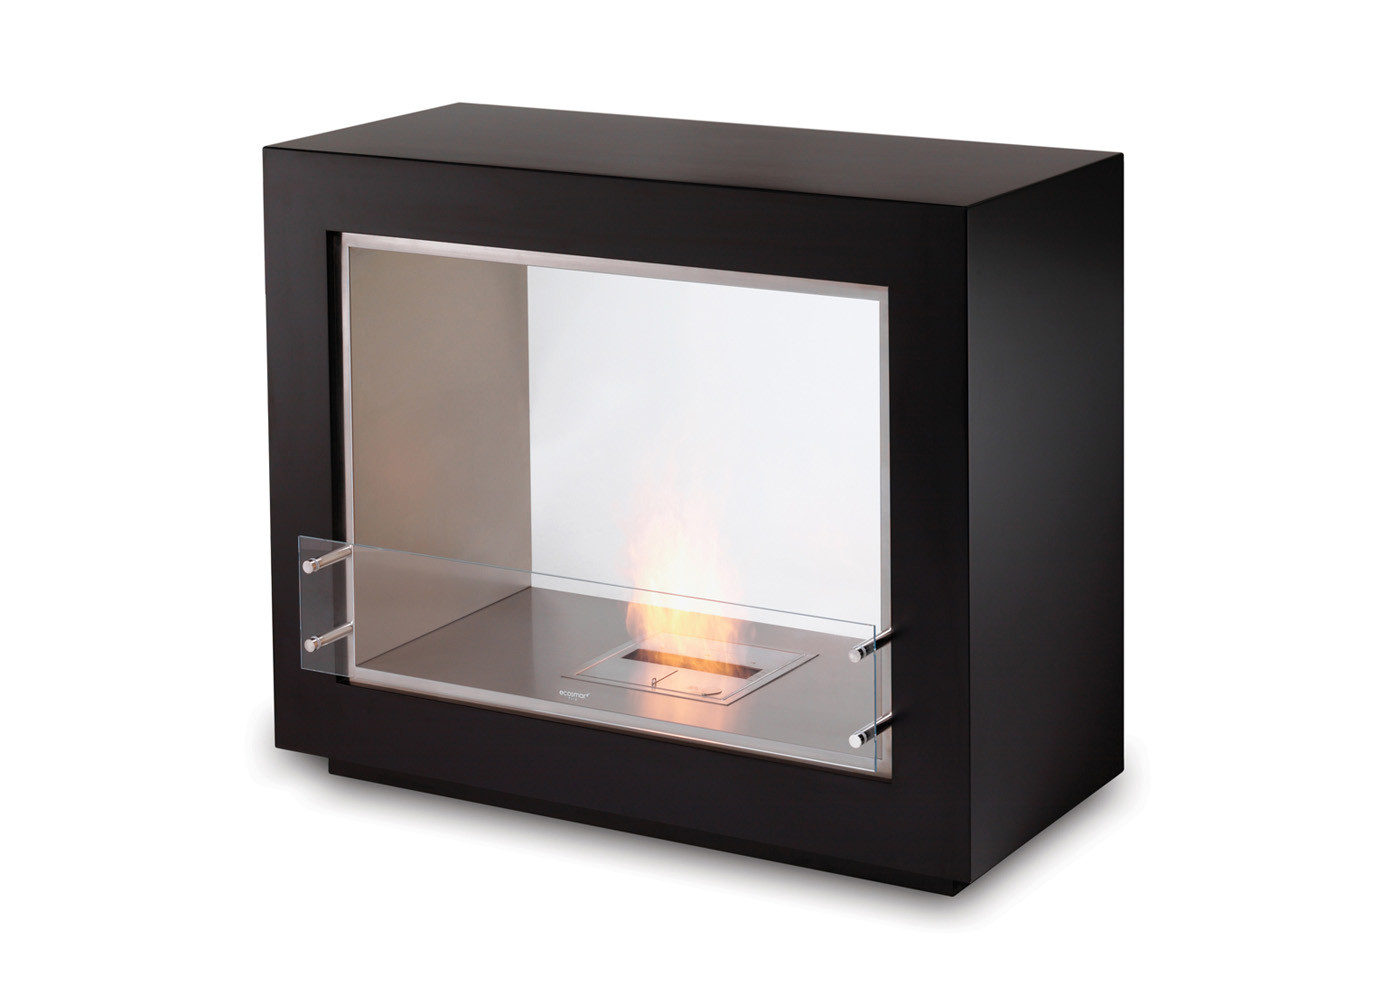 ecosmart-4390-vision-flame-ws-copy.jpg